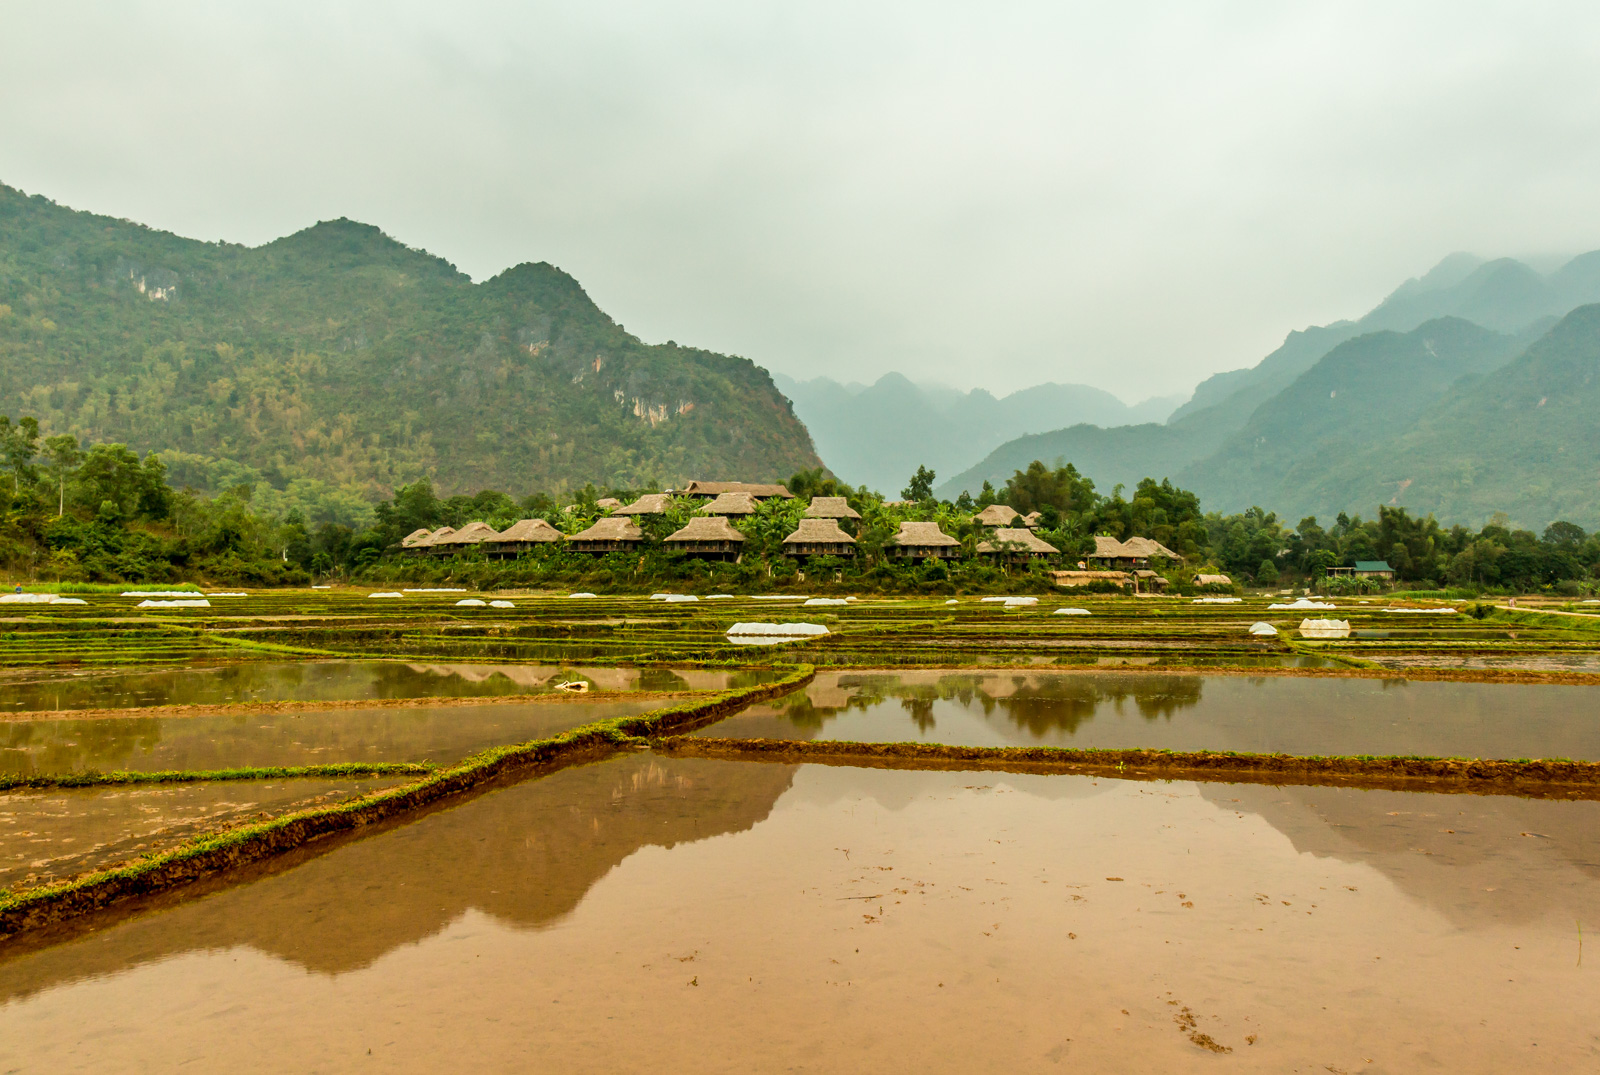 Deep in the rice fields was a mysterious traditional village... Actually, it's just a resort.